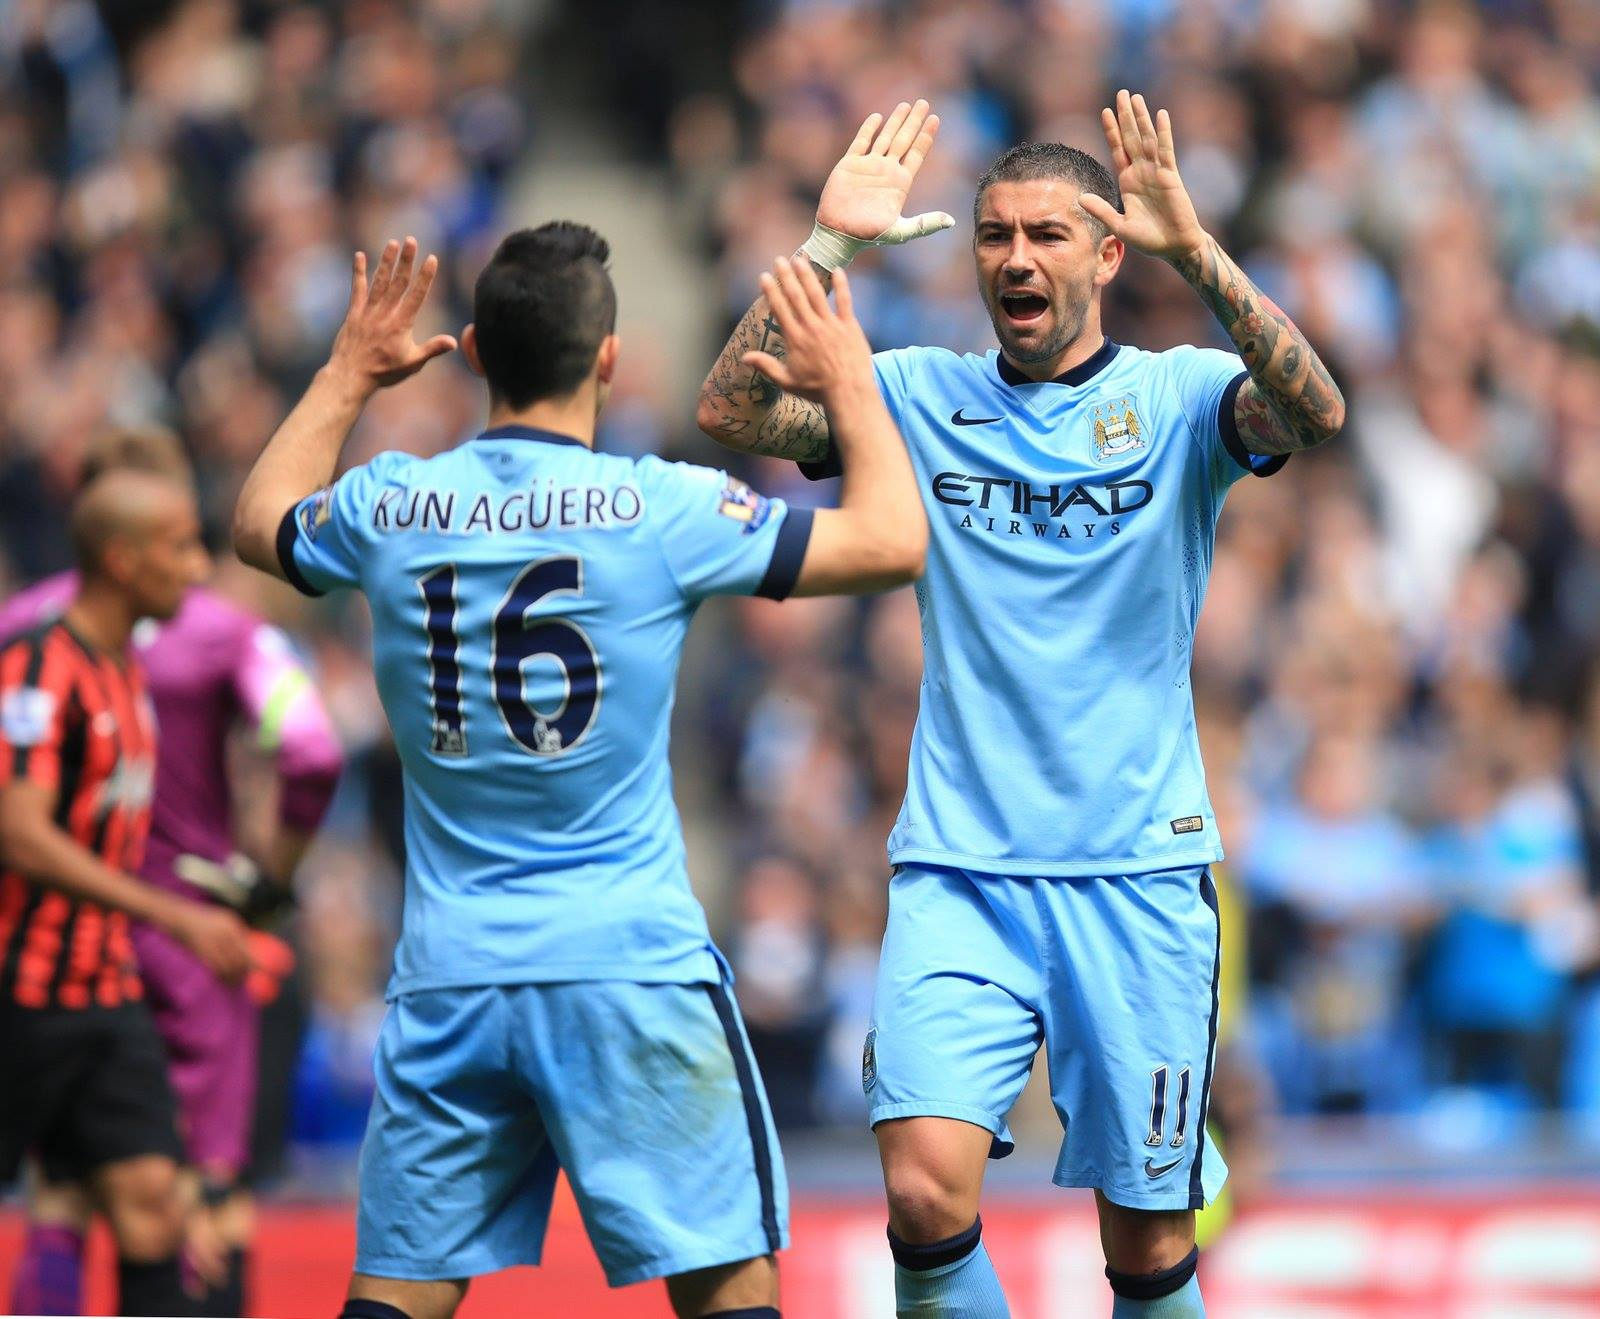 Familiar one-two - Aguero and Kolarov celebrate scoring for the second consecutive home game, during the 6-0 rout of QPR. Courtesy@MCFC